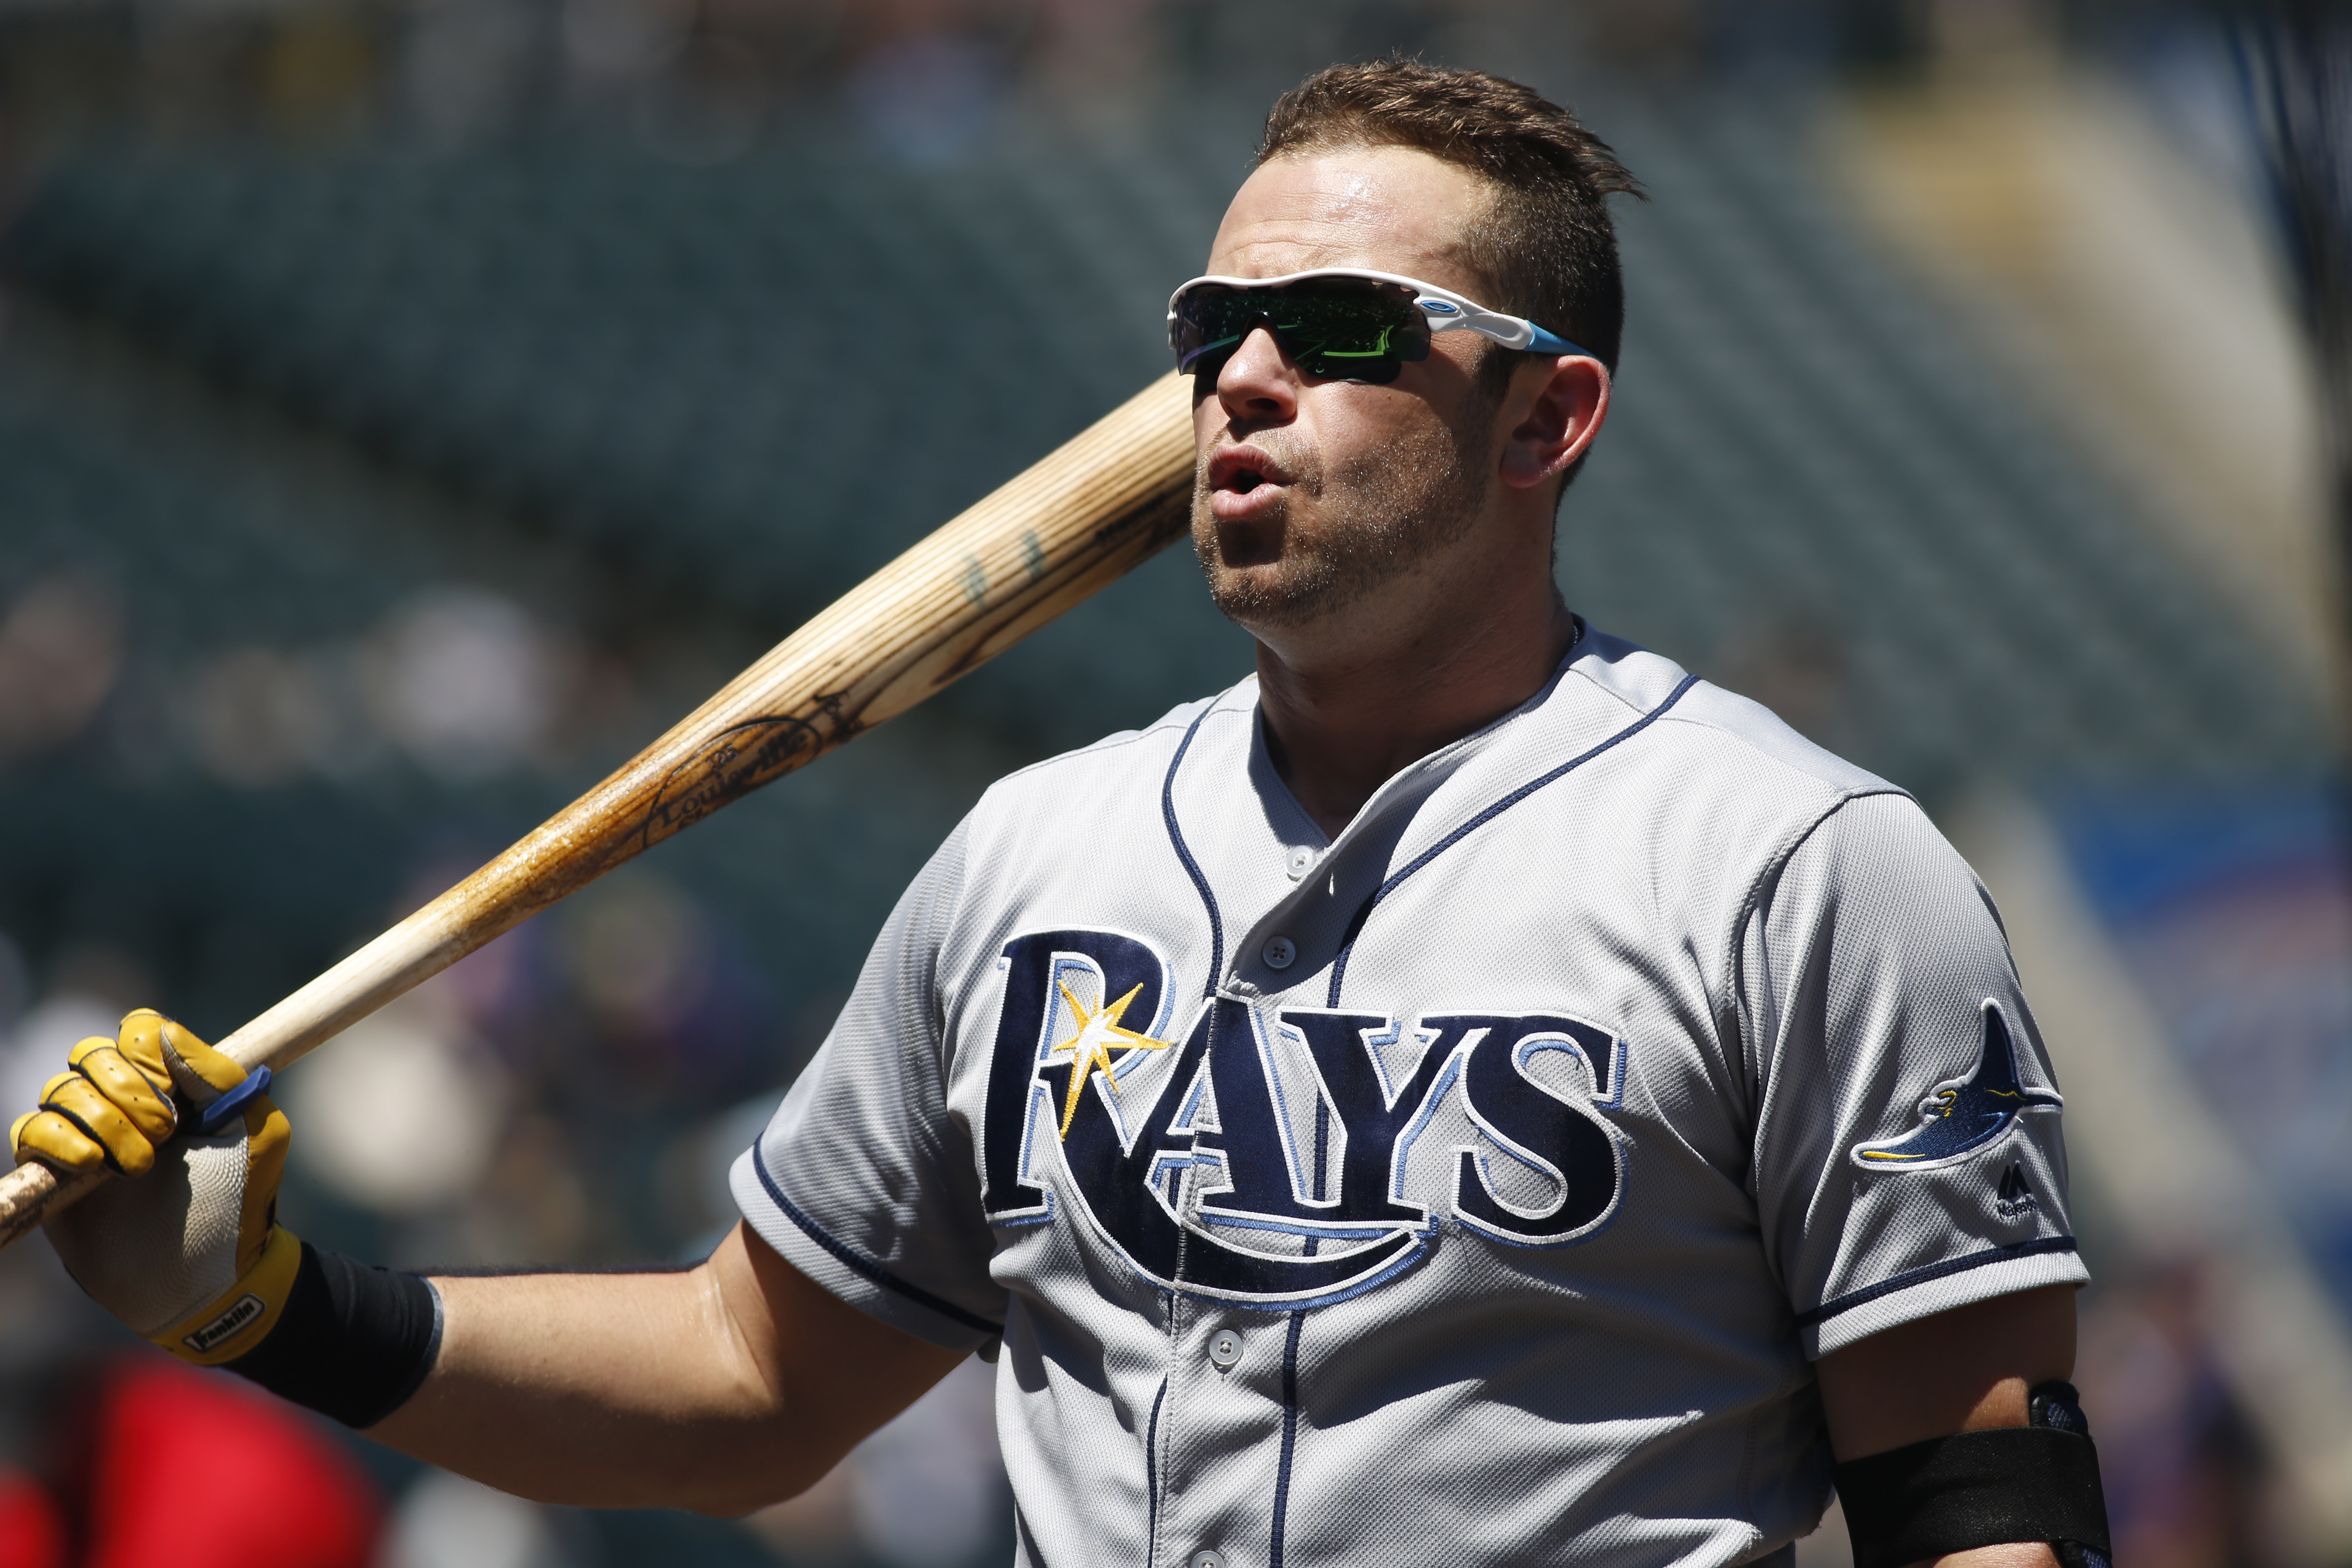 Tampa Bay Rays' Evan Longoria warms up in the on-deck circle as he waits to face Colorado Rockies starting pitcher Jorge De La Rosa in the first inning of a baseball game Wednesday, July 20, 2016 in Denver. (AP Photo/David Zalubowski)